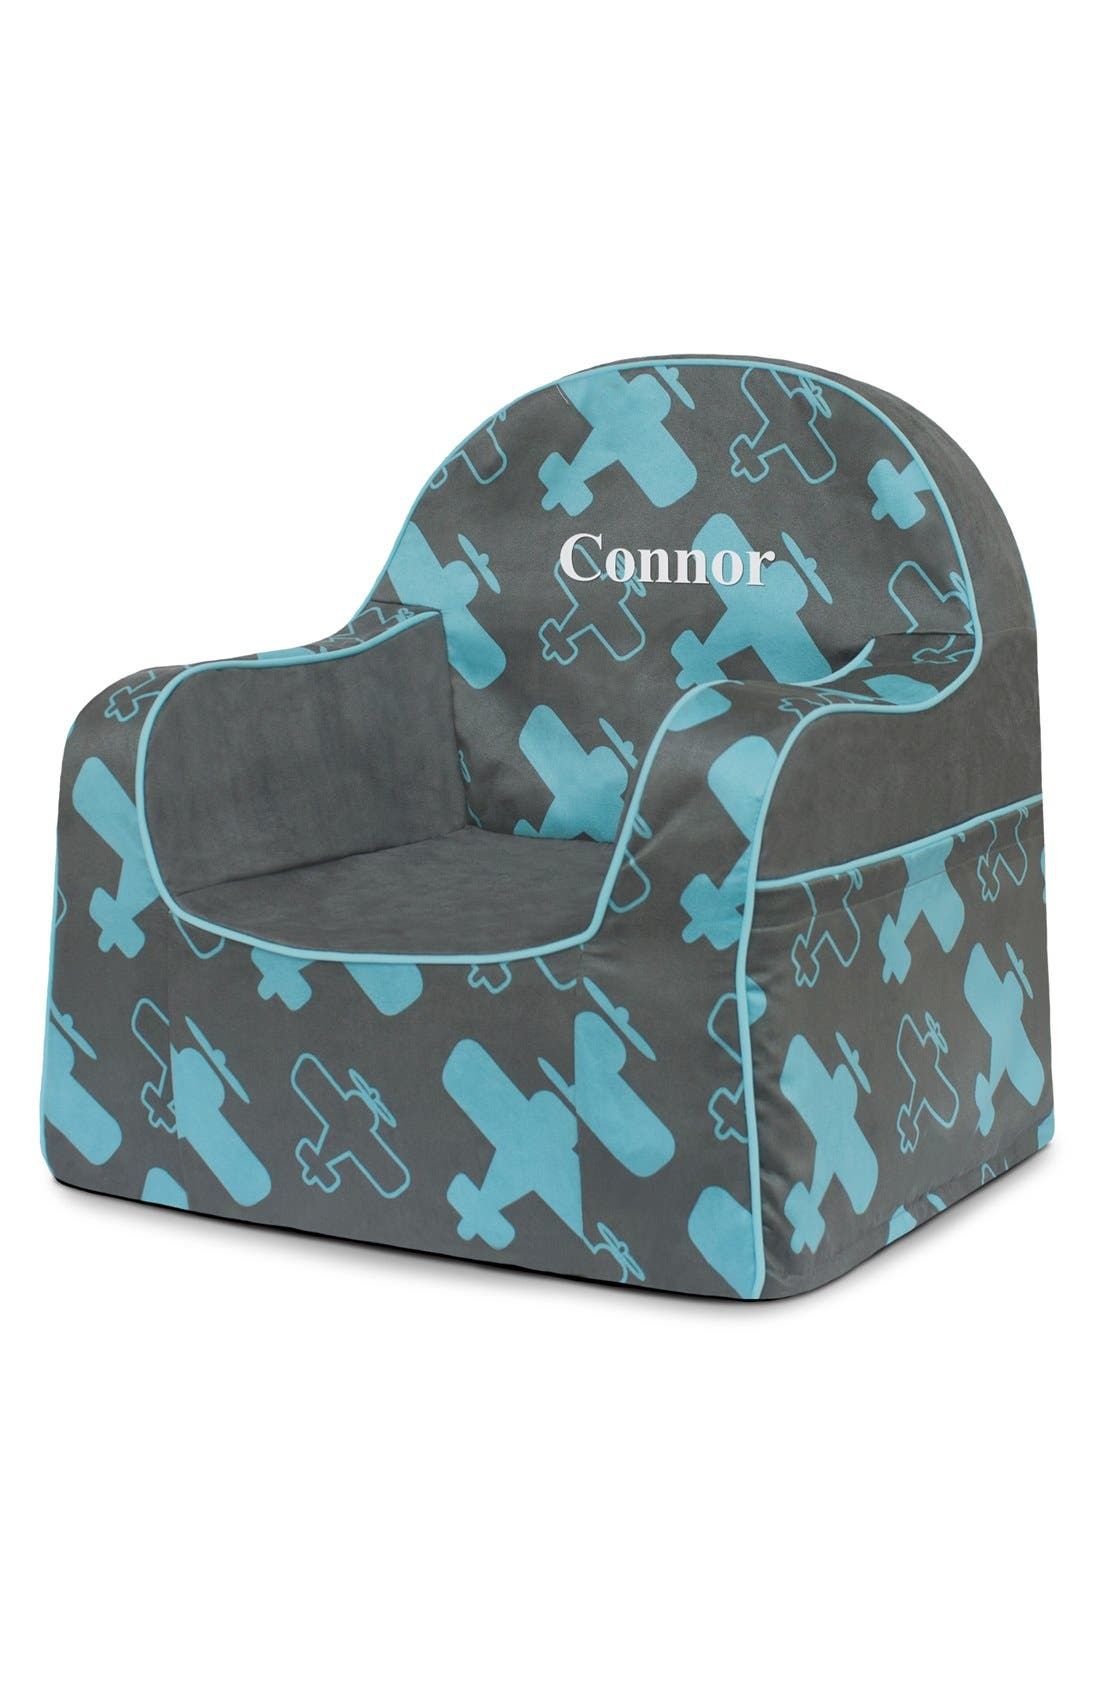 'Personalized Little Reader' Chair,                             Main thumbnail 1, color,                             400